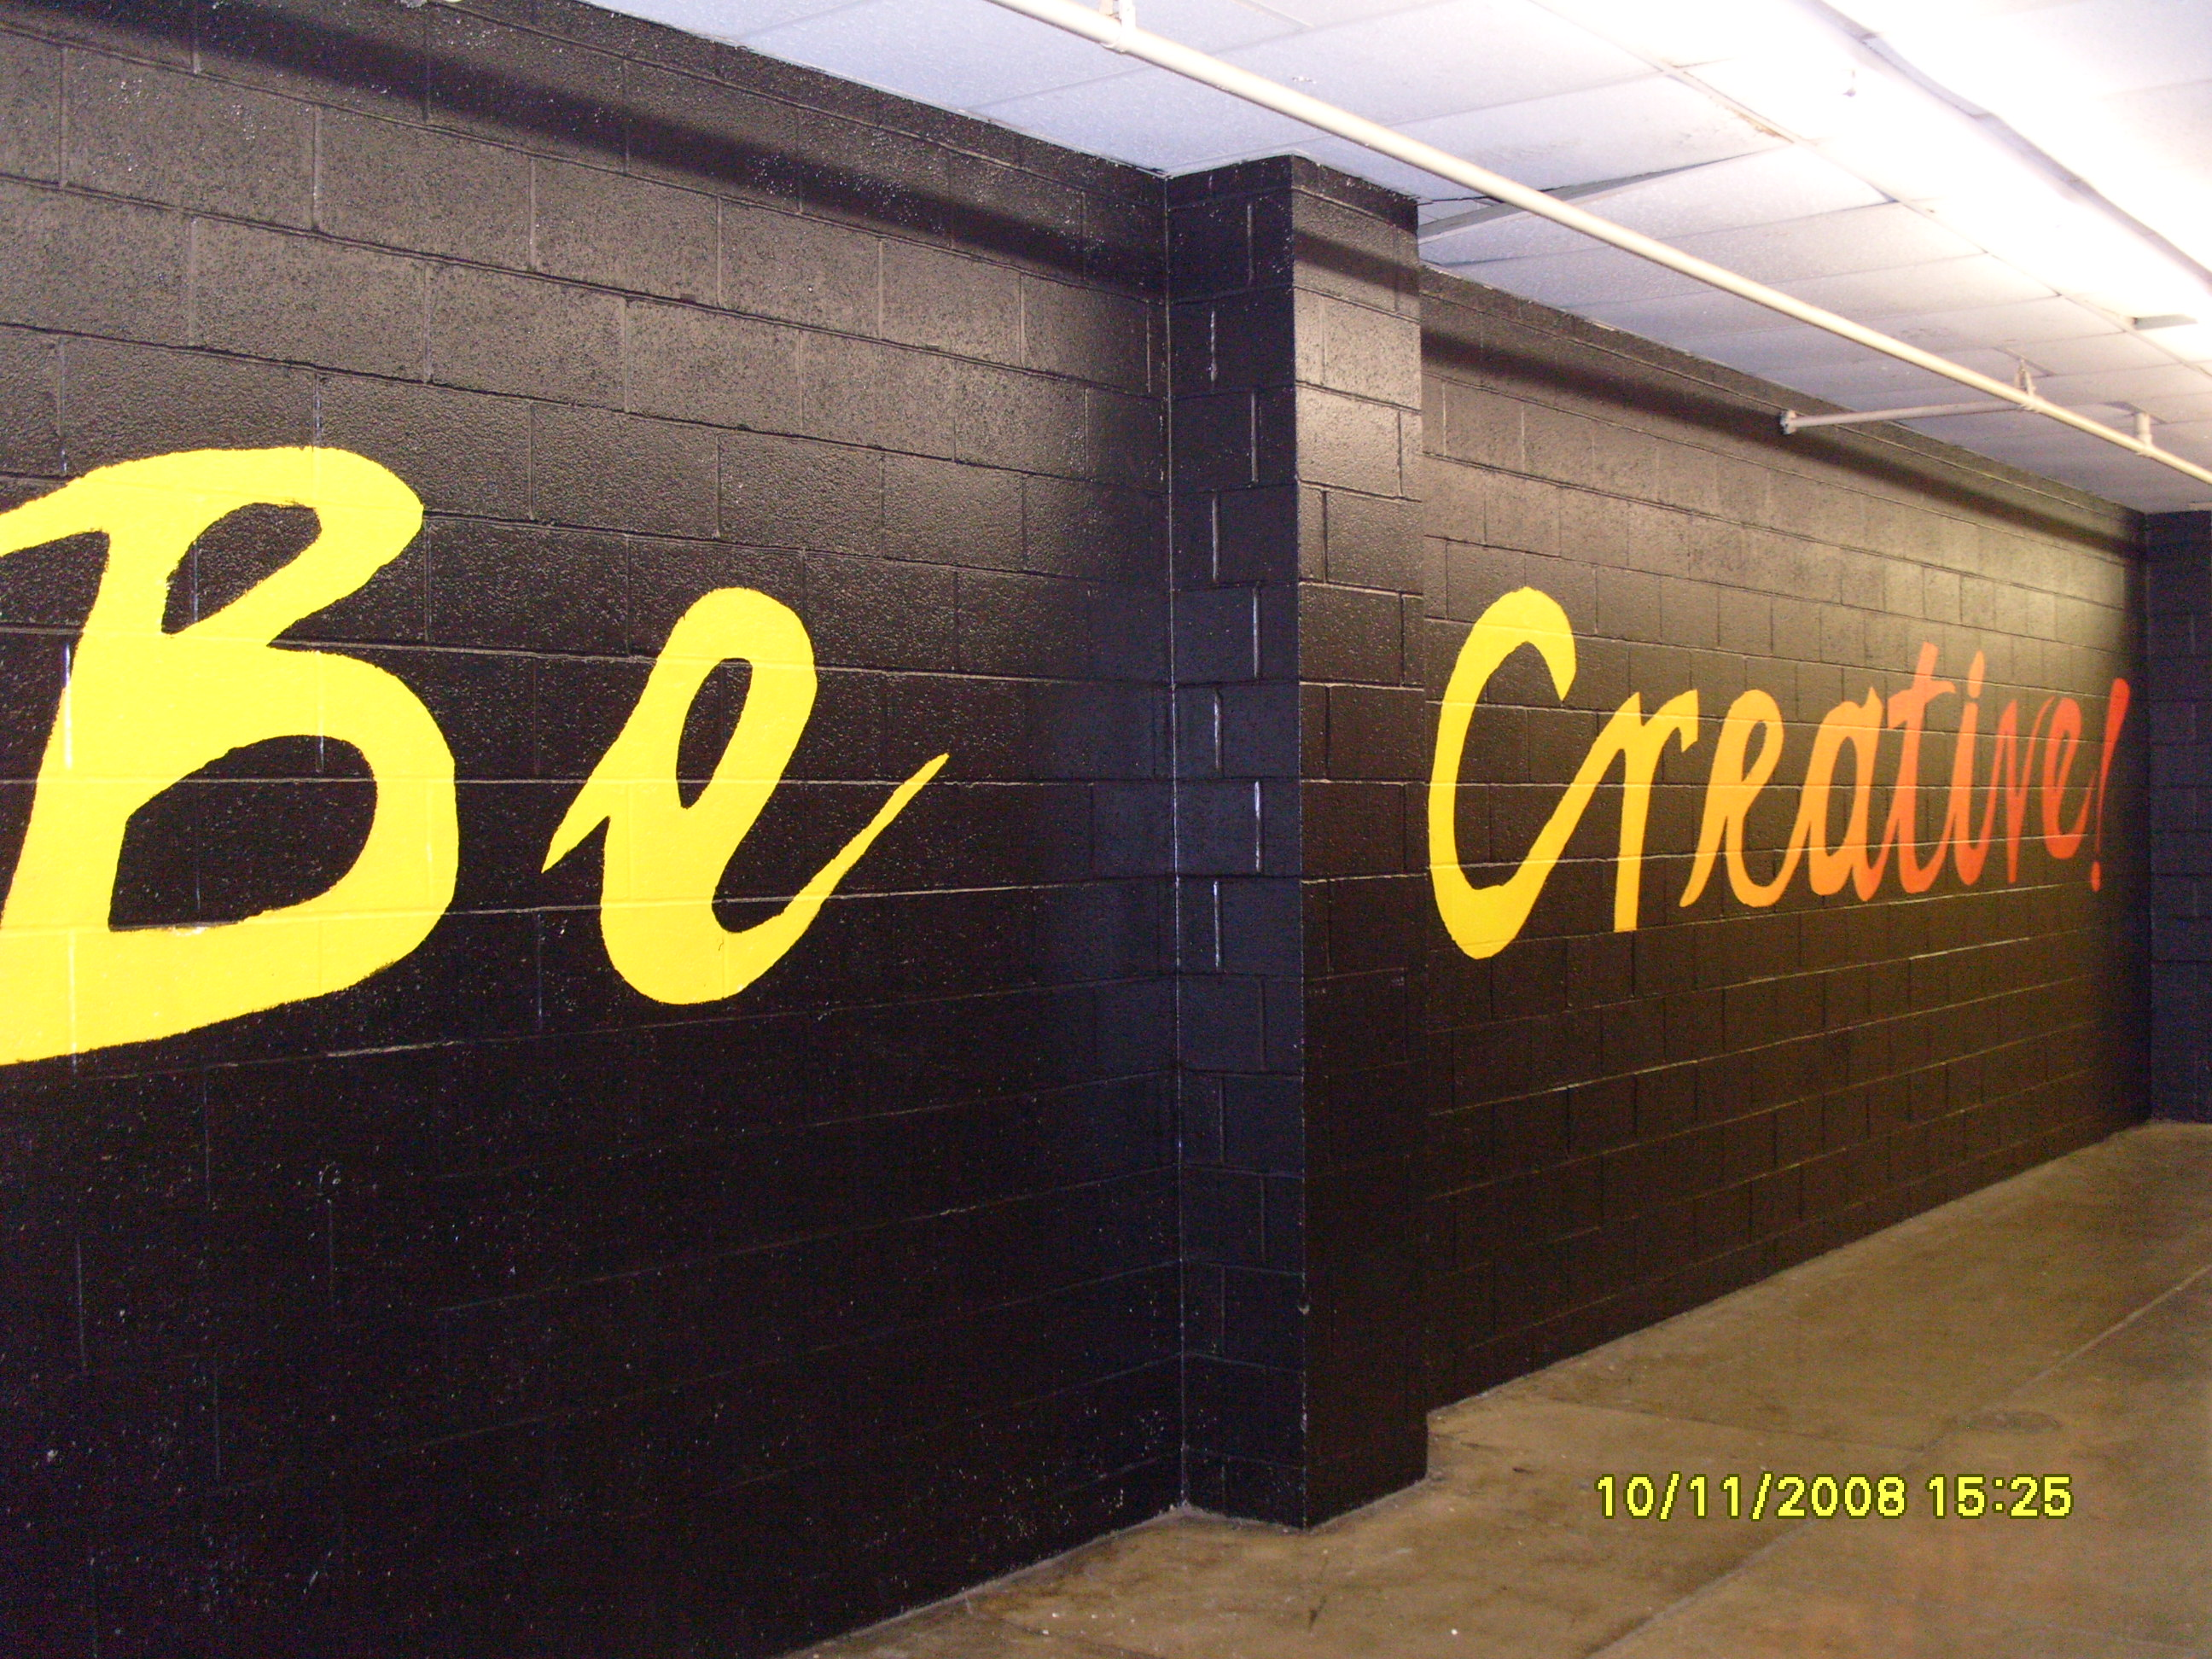 100th_Anniv_Beautification/be_creative.JPG